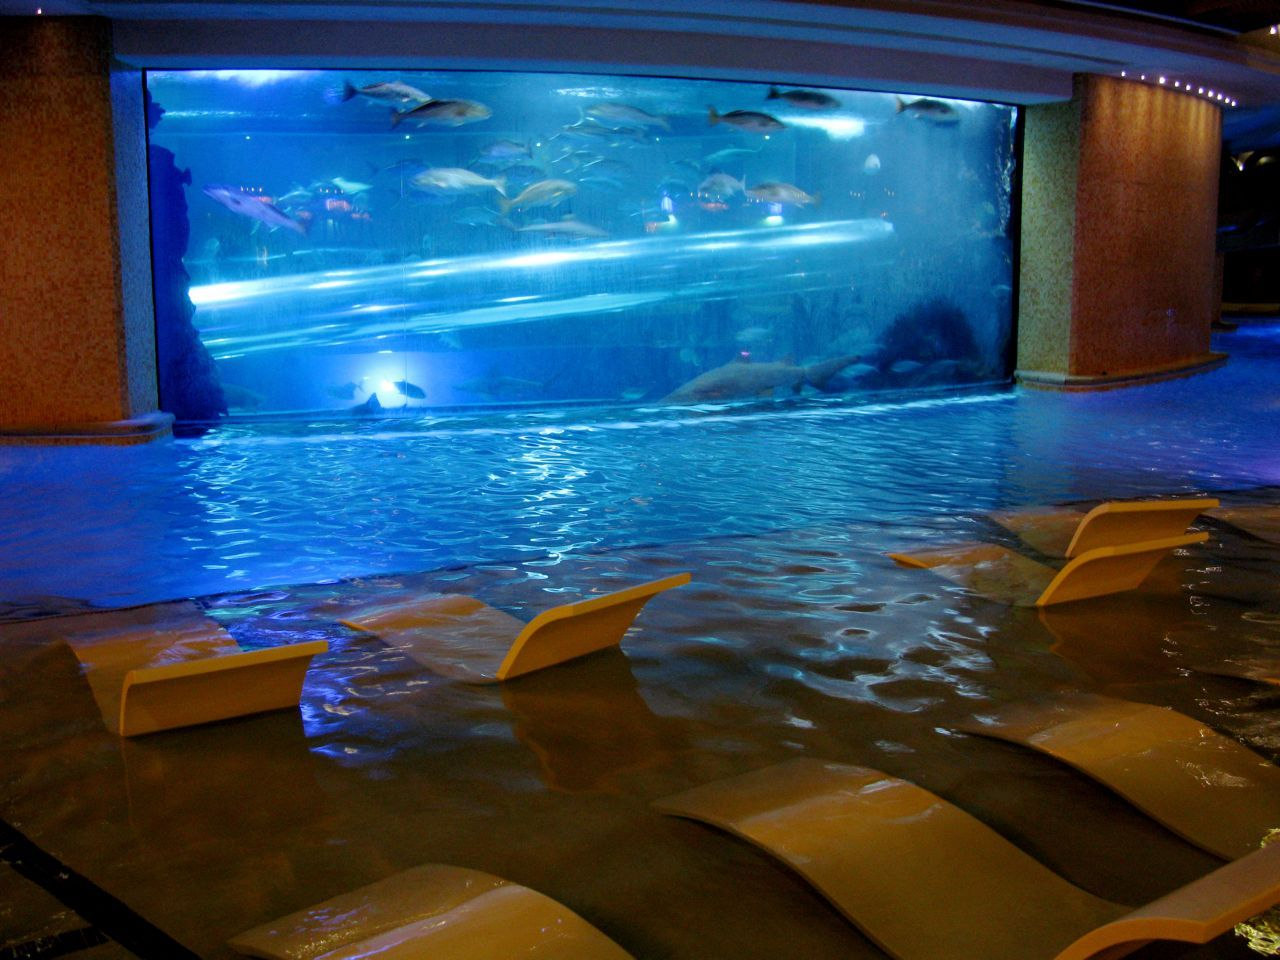 Fish aquarium karachi - I So Need This Right Now But With A Movie Screen Instead Of